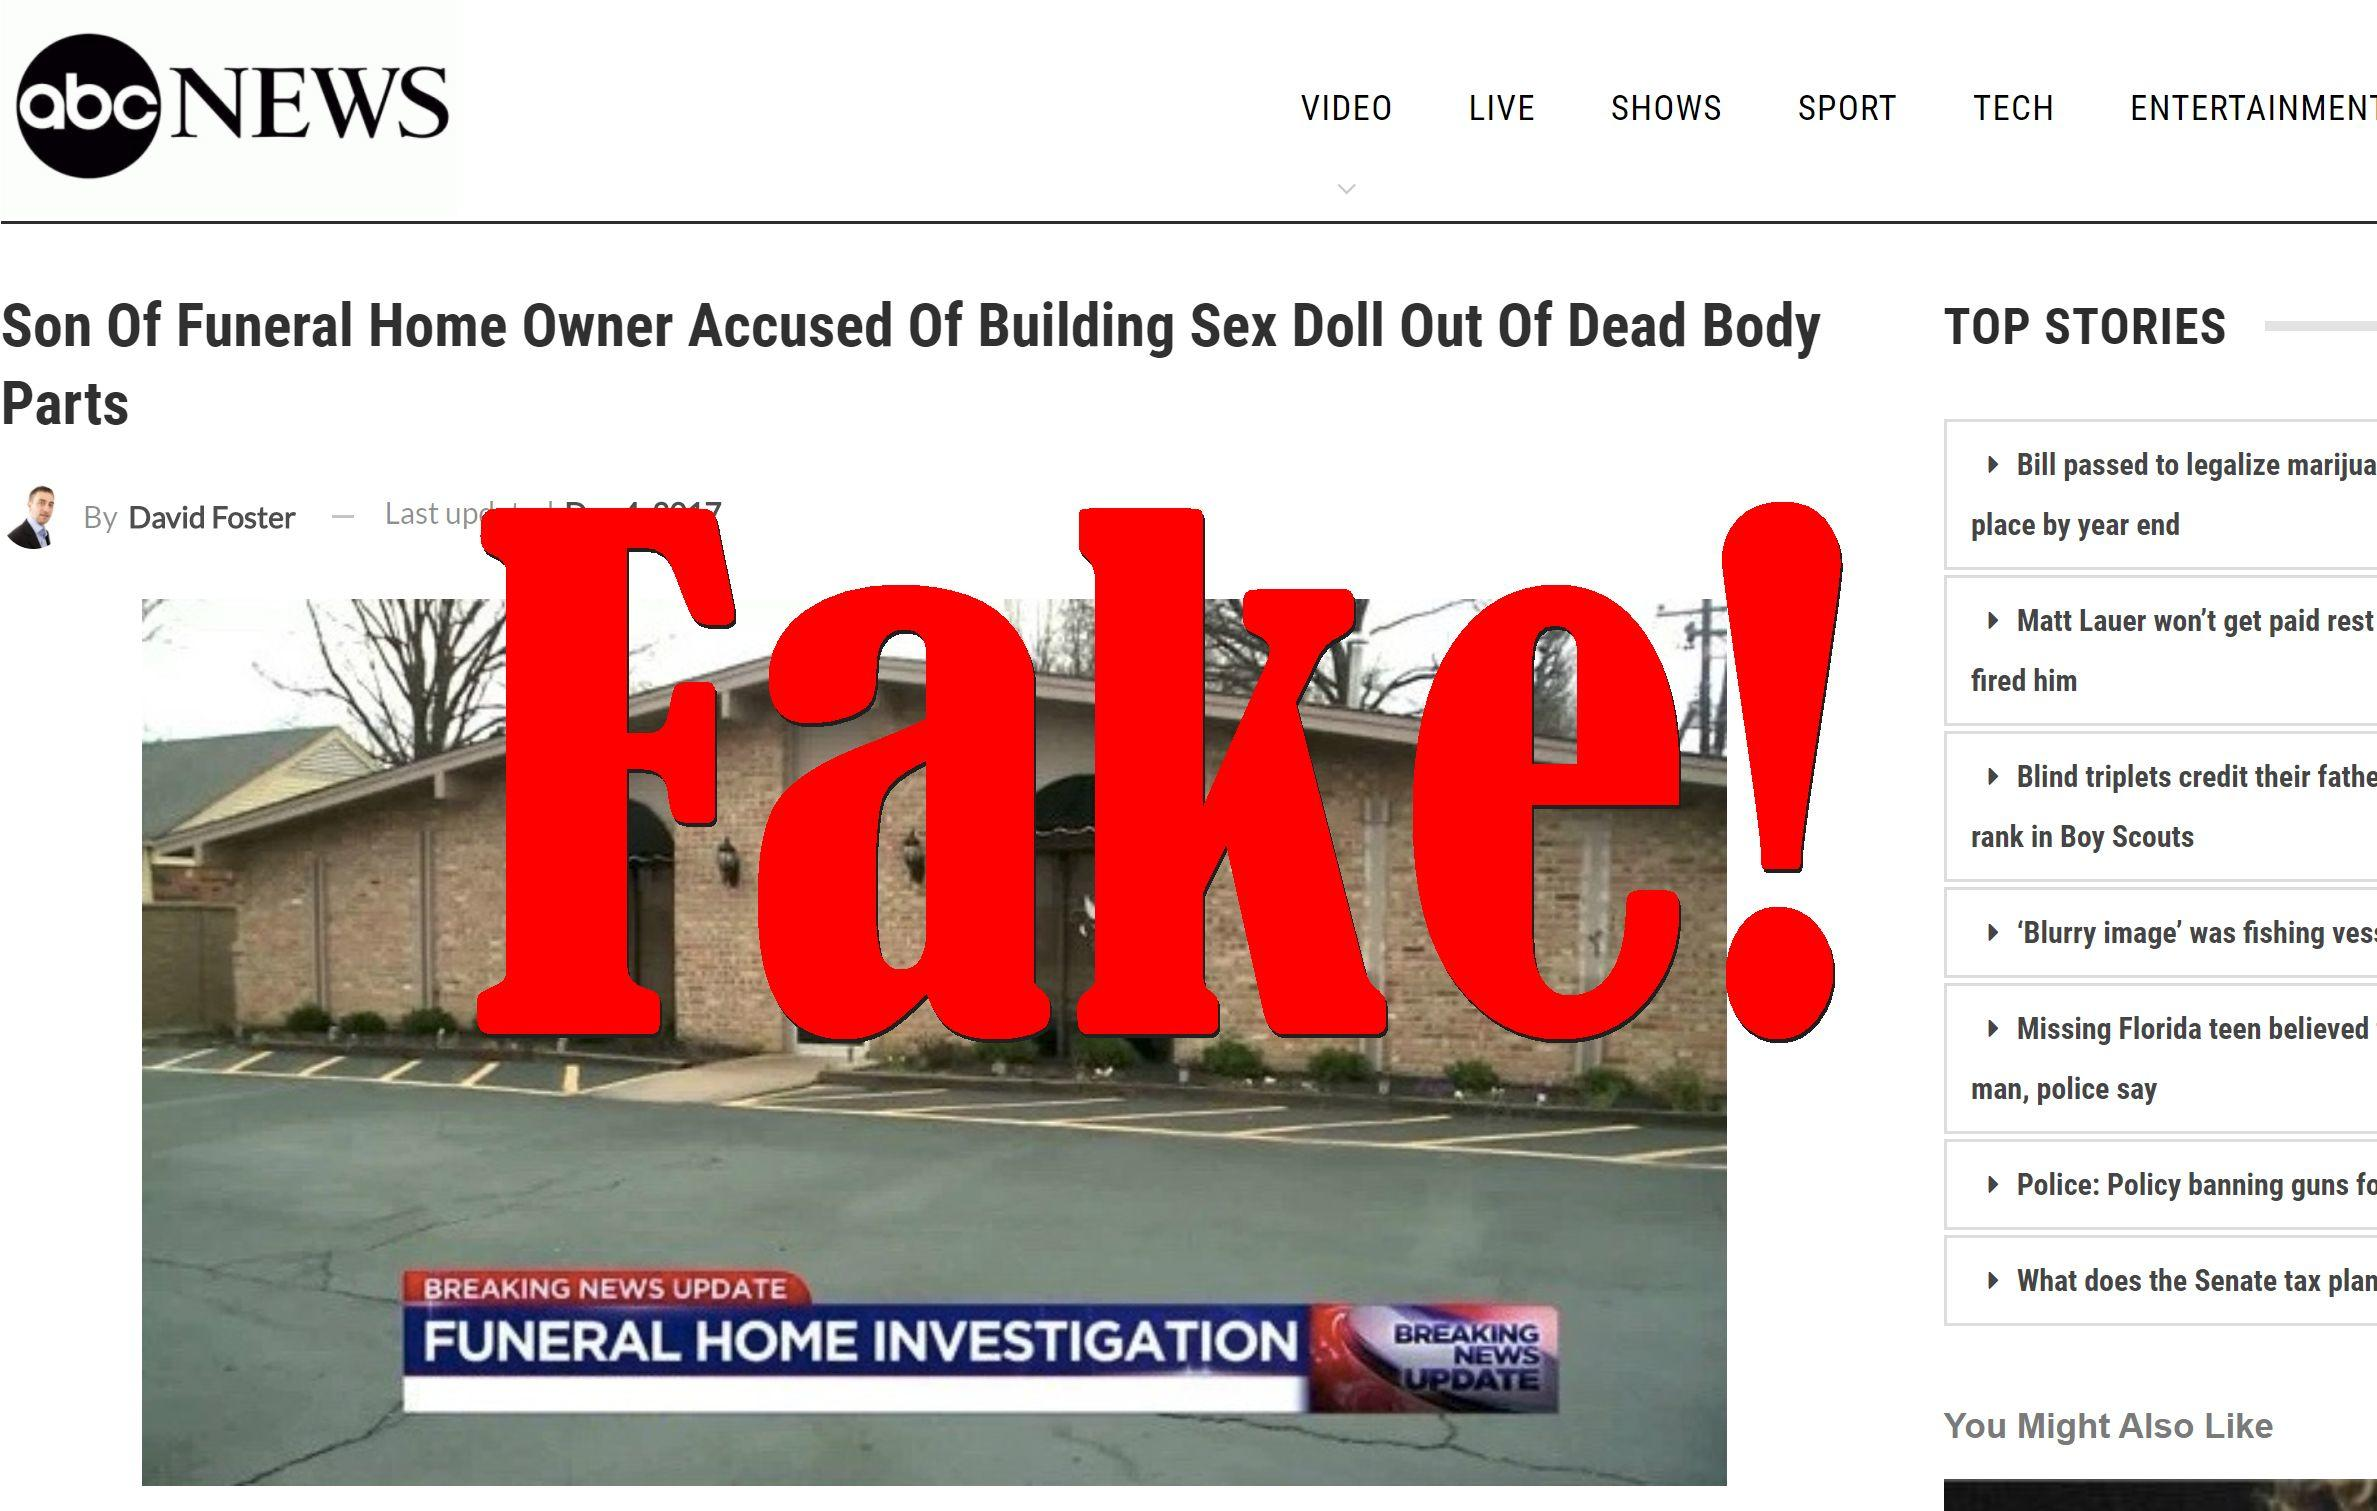 Fake News: Son Of Funeral Home Owner NOT Accused Of Building Sex Doll Out Of Dead Body Parts